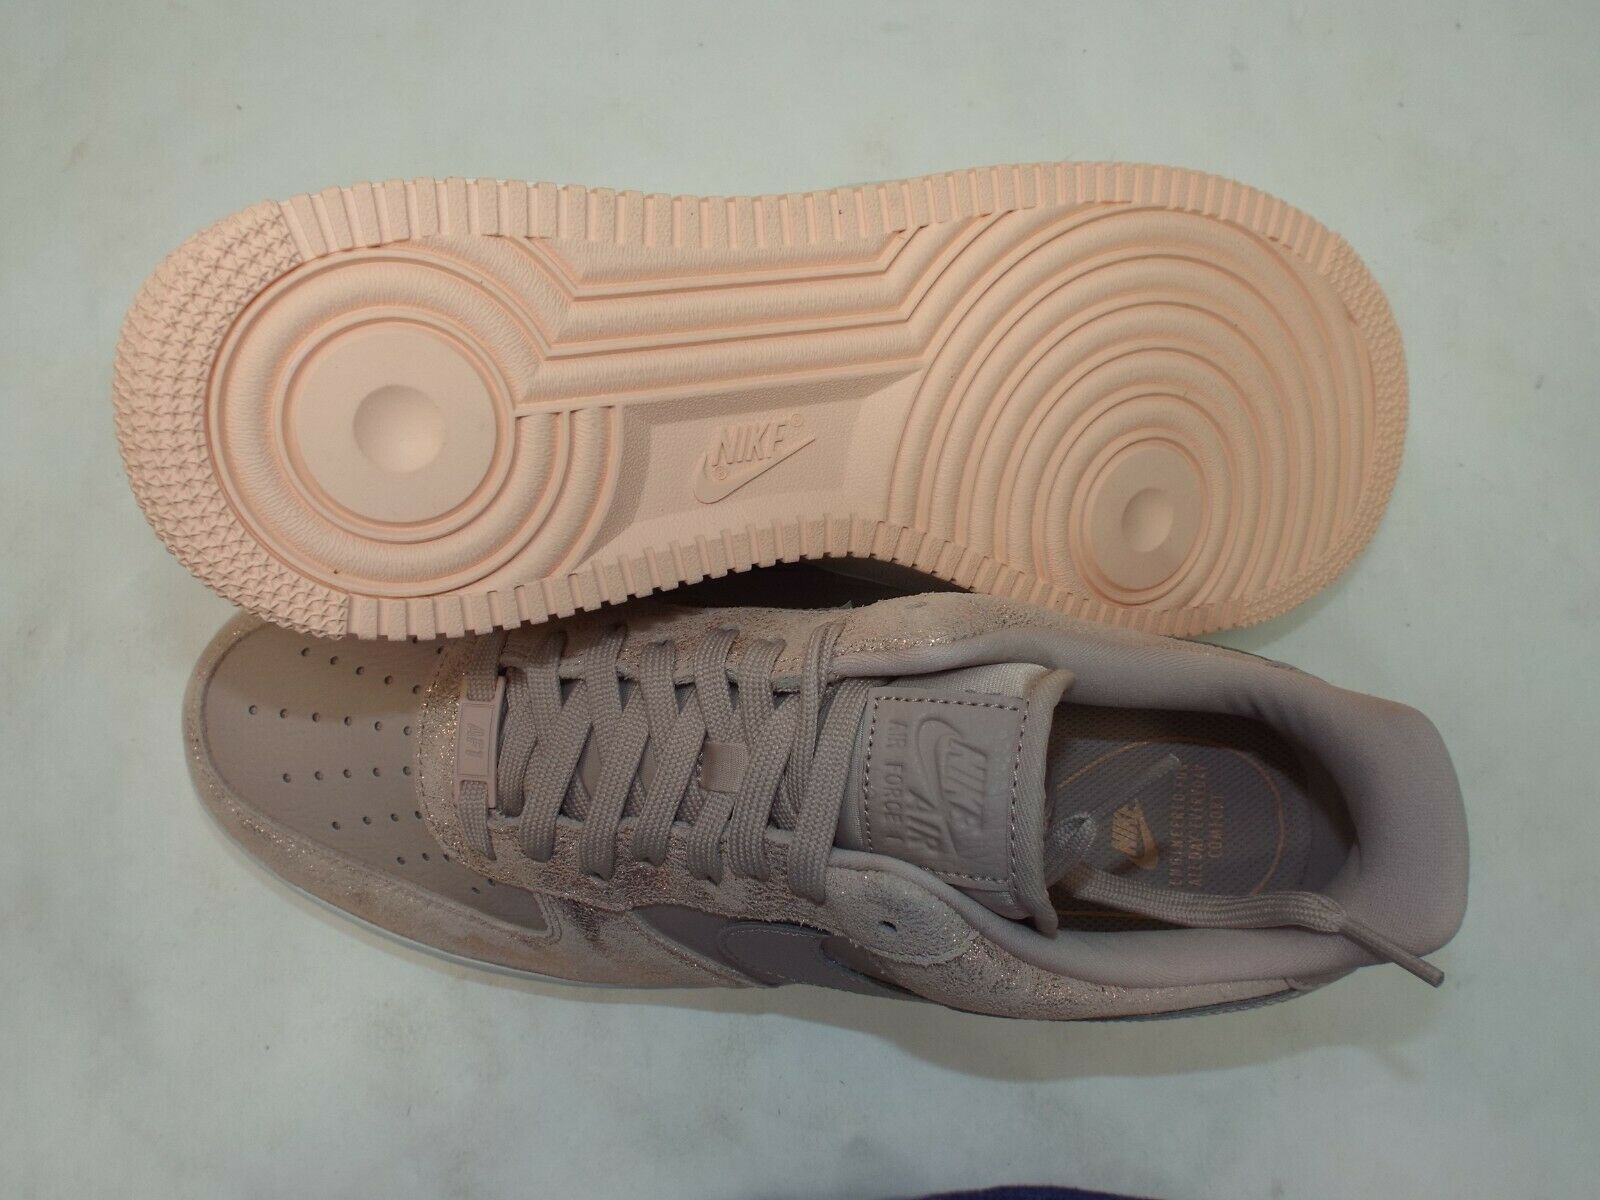 Details about Nike Air Max 97 LX Womens Overbranded Desert Dust black AR7621 200 NIB